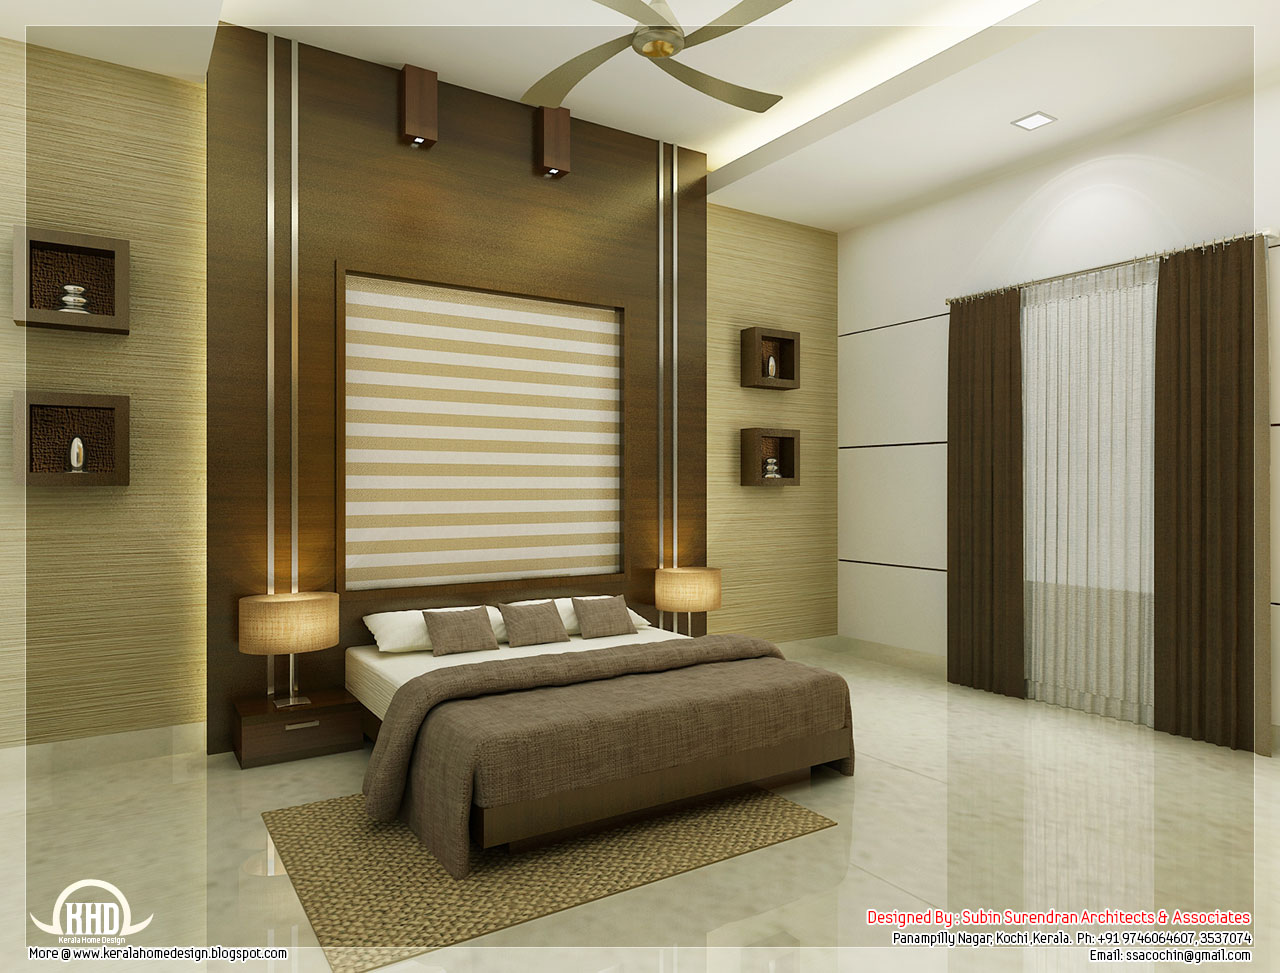 Beautiful bedroom interior designs kerala house design - Bedrooms designs ...